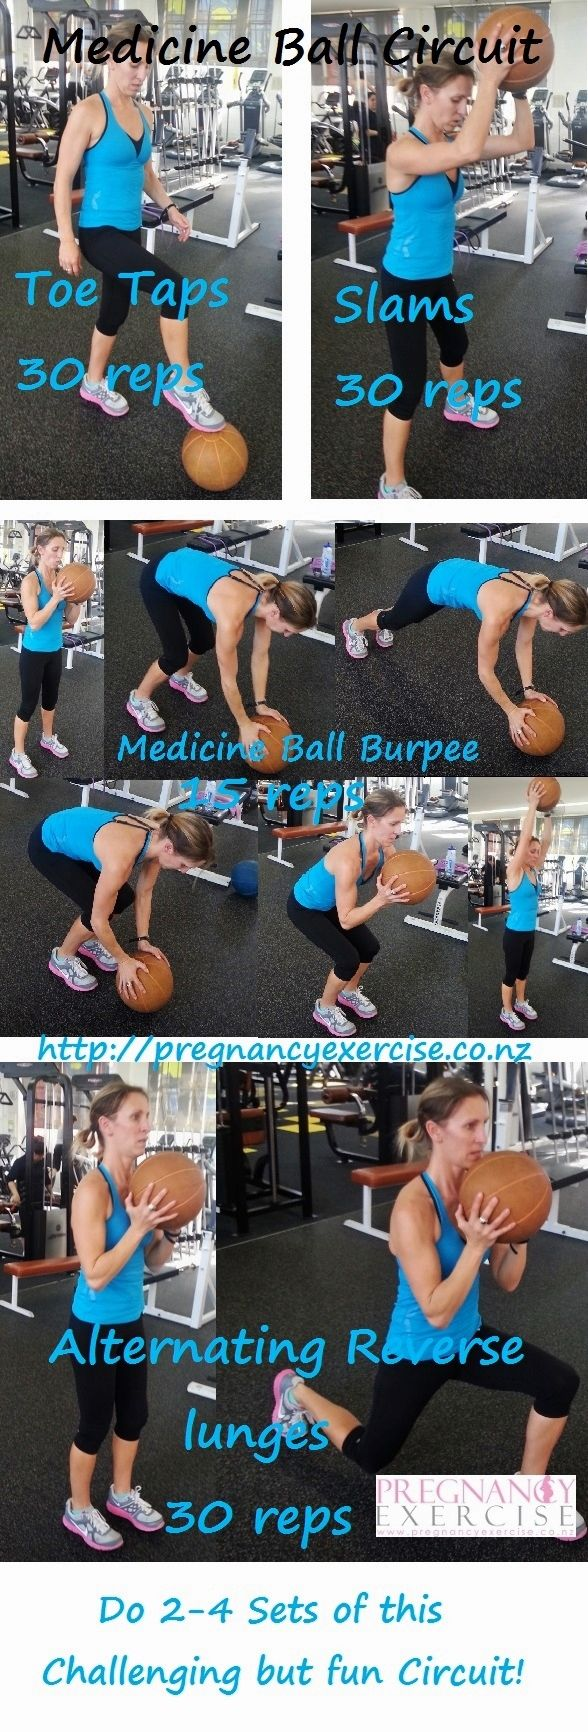 Health & Fitness: Total Body Workout! Medicine Ball: I have been enjoying..... well sort of doing this awesome Medicine Ball circuit! Avoid the Burpees if you still have a Diastasis, this is an exercise circuit that will challenge every muscle in your body. #Fitness #Challenge #Workout